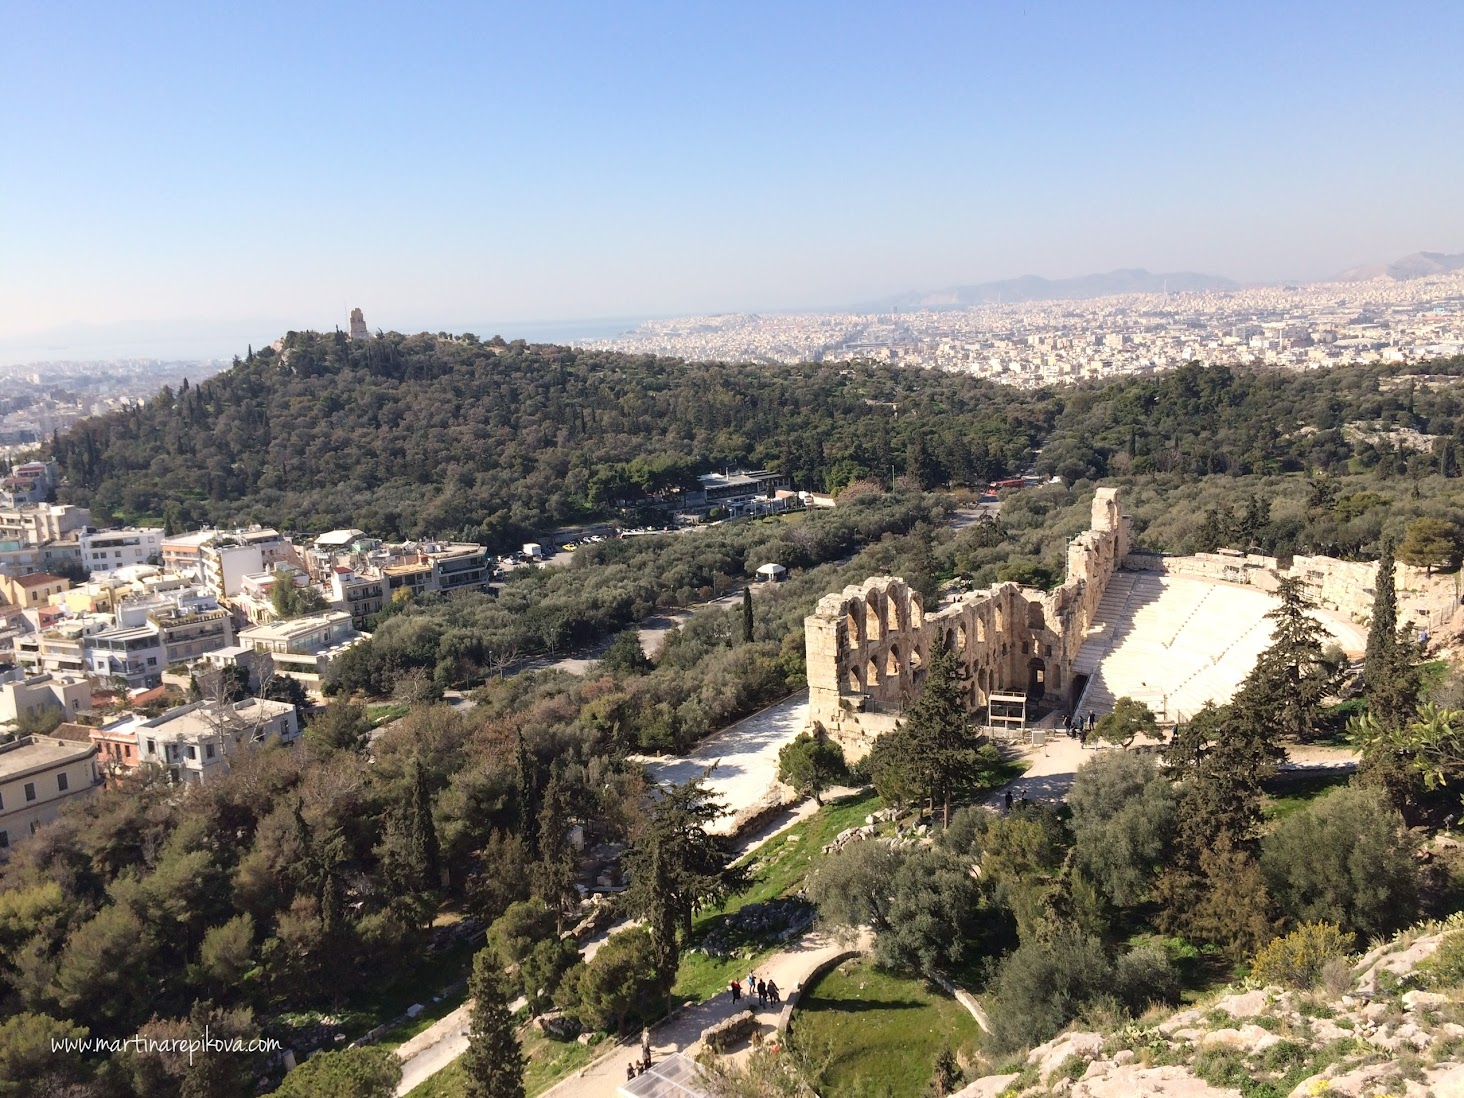 Filopappou hill viewed from Acropolis, Athens, Greece